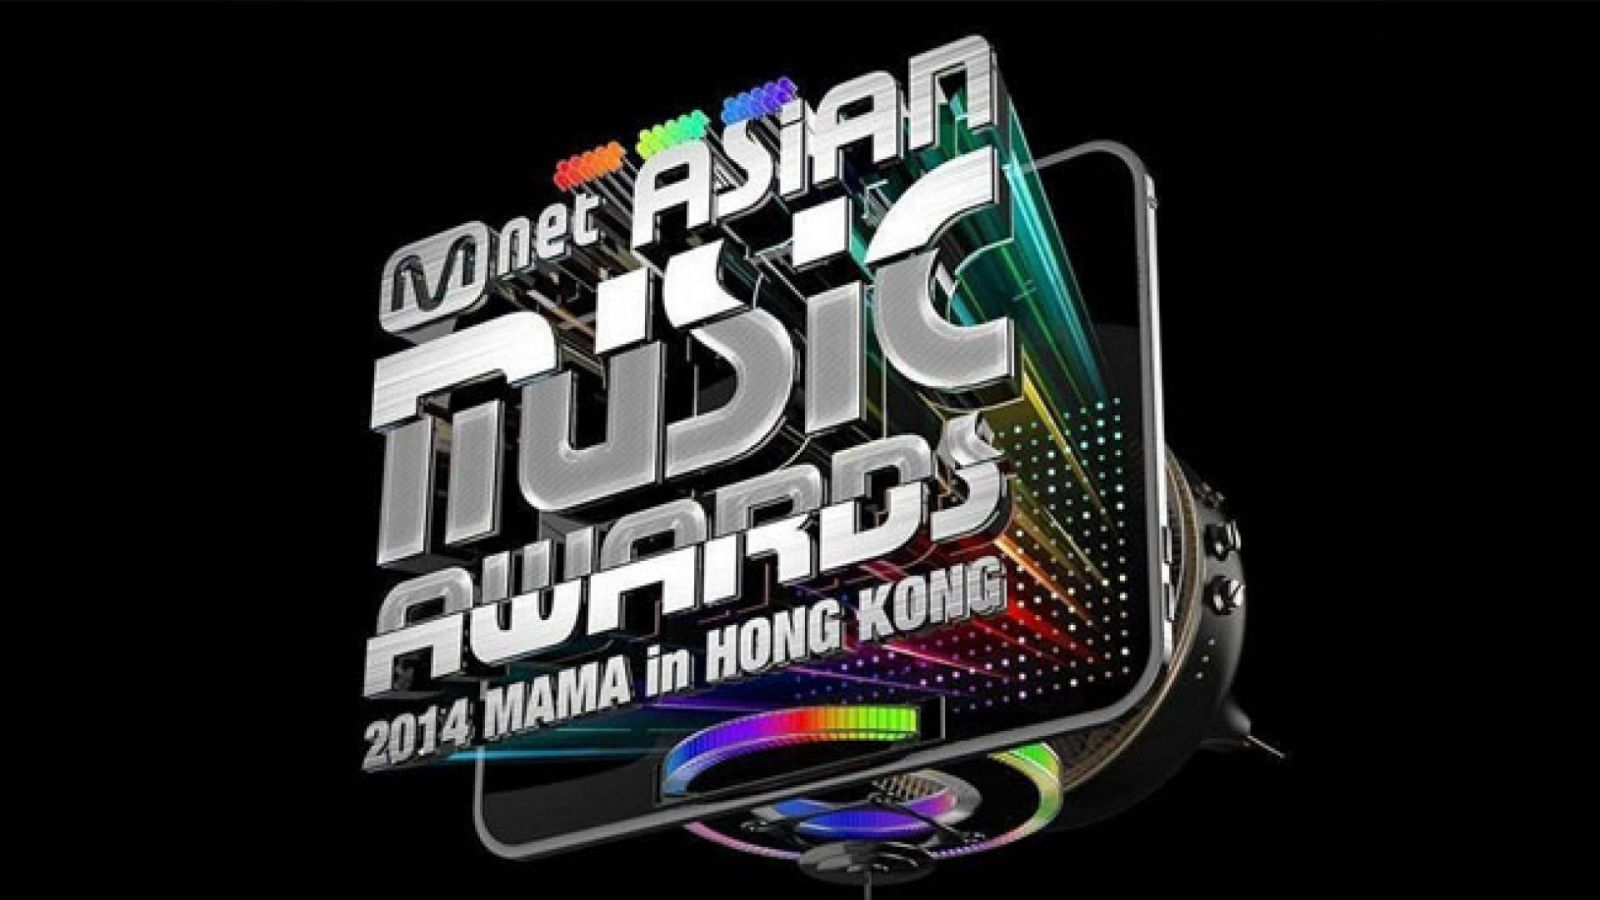 Vencedores do MAMA 2014 © Mnet Asian Music Awards